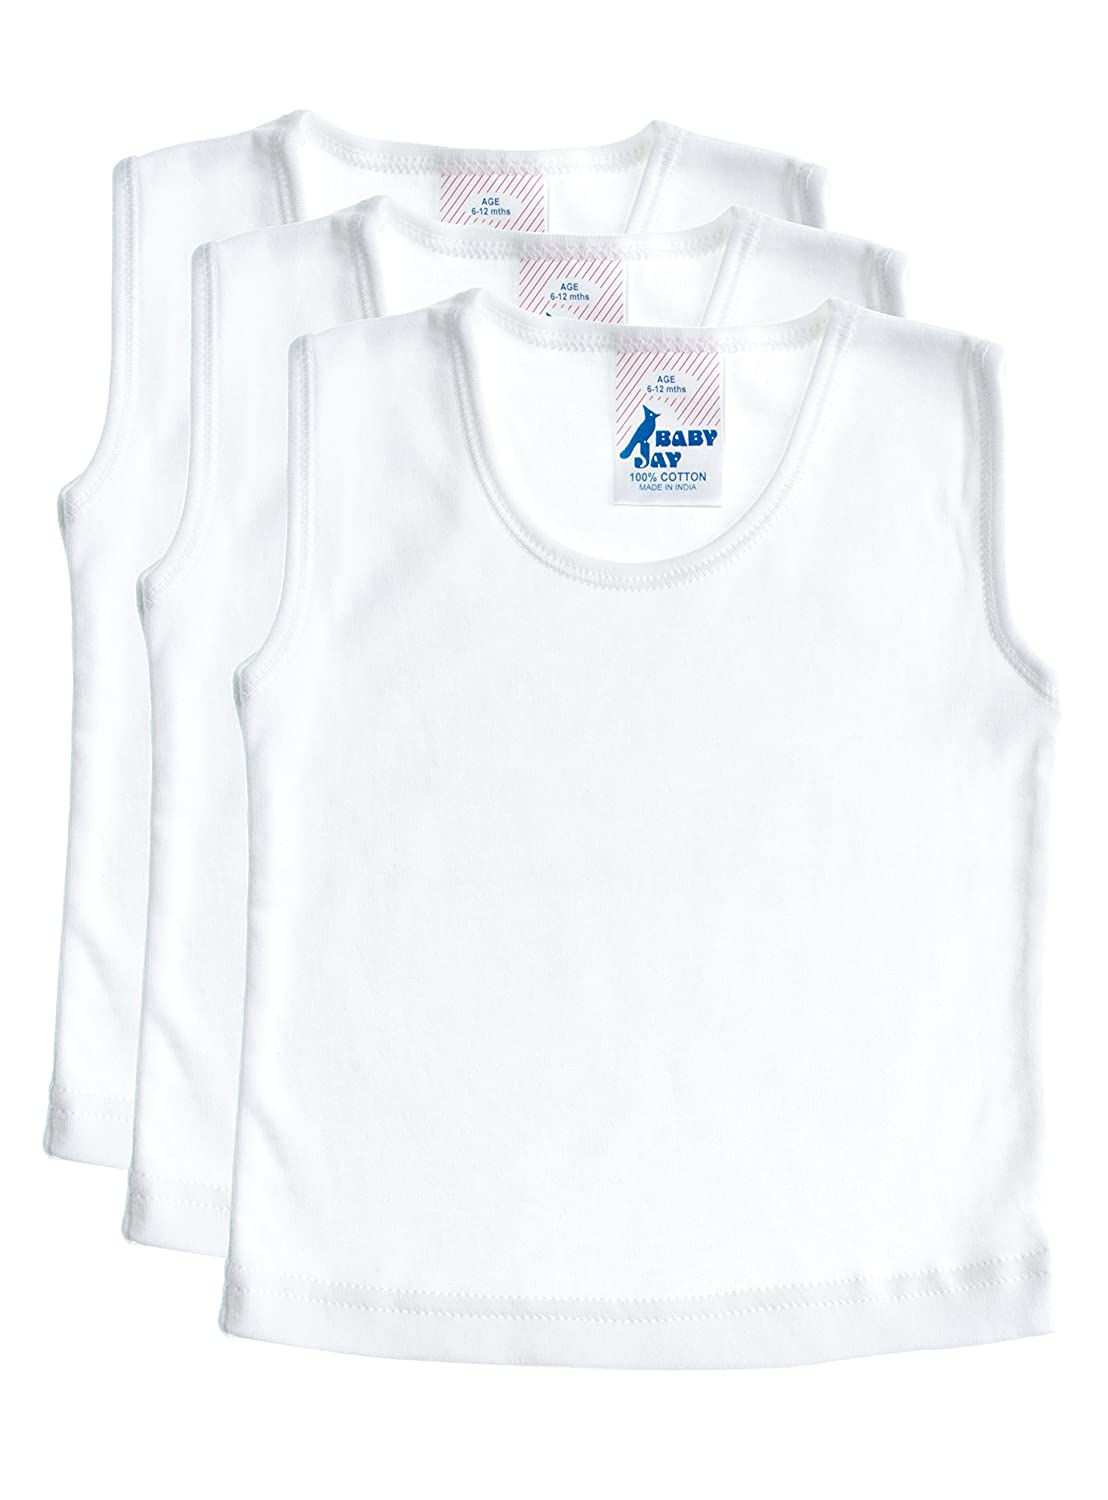 Baby Jay Baby and Toddler Tank Top 3 Pack - White Soft Cotton Sleeveless T-Shirt Undershirt - Boys and Girls Tee WTT-3PK